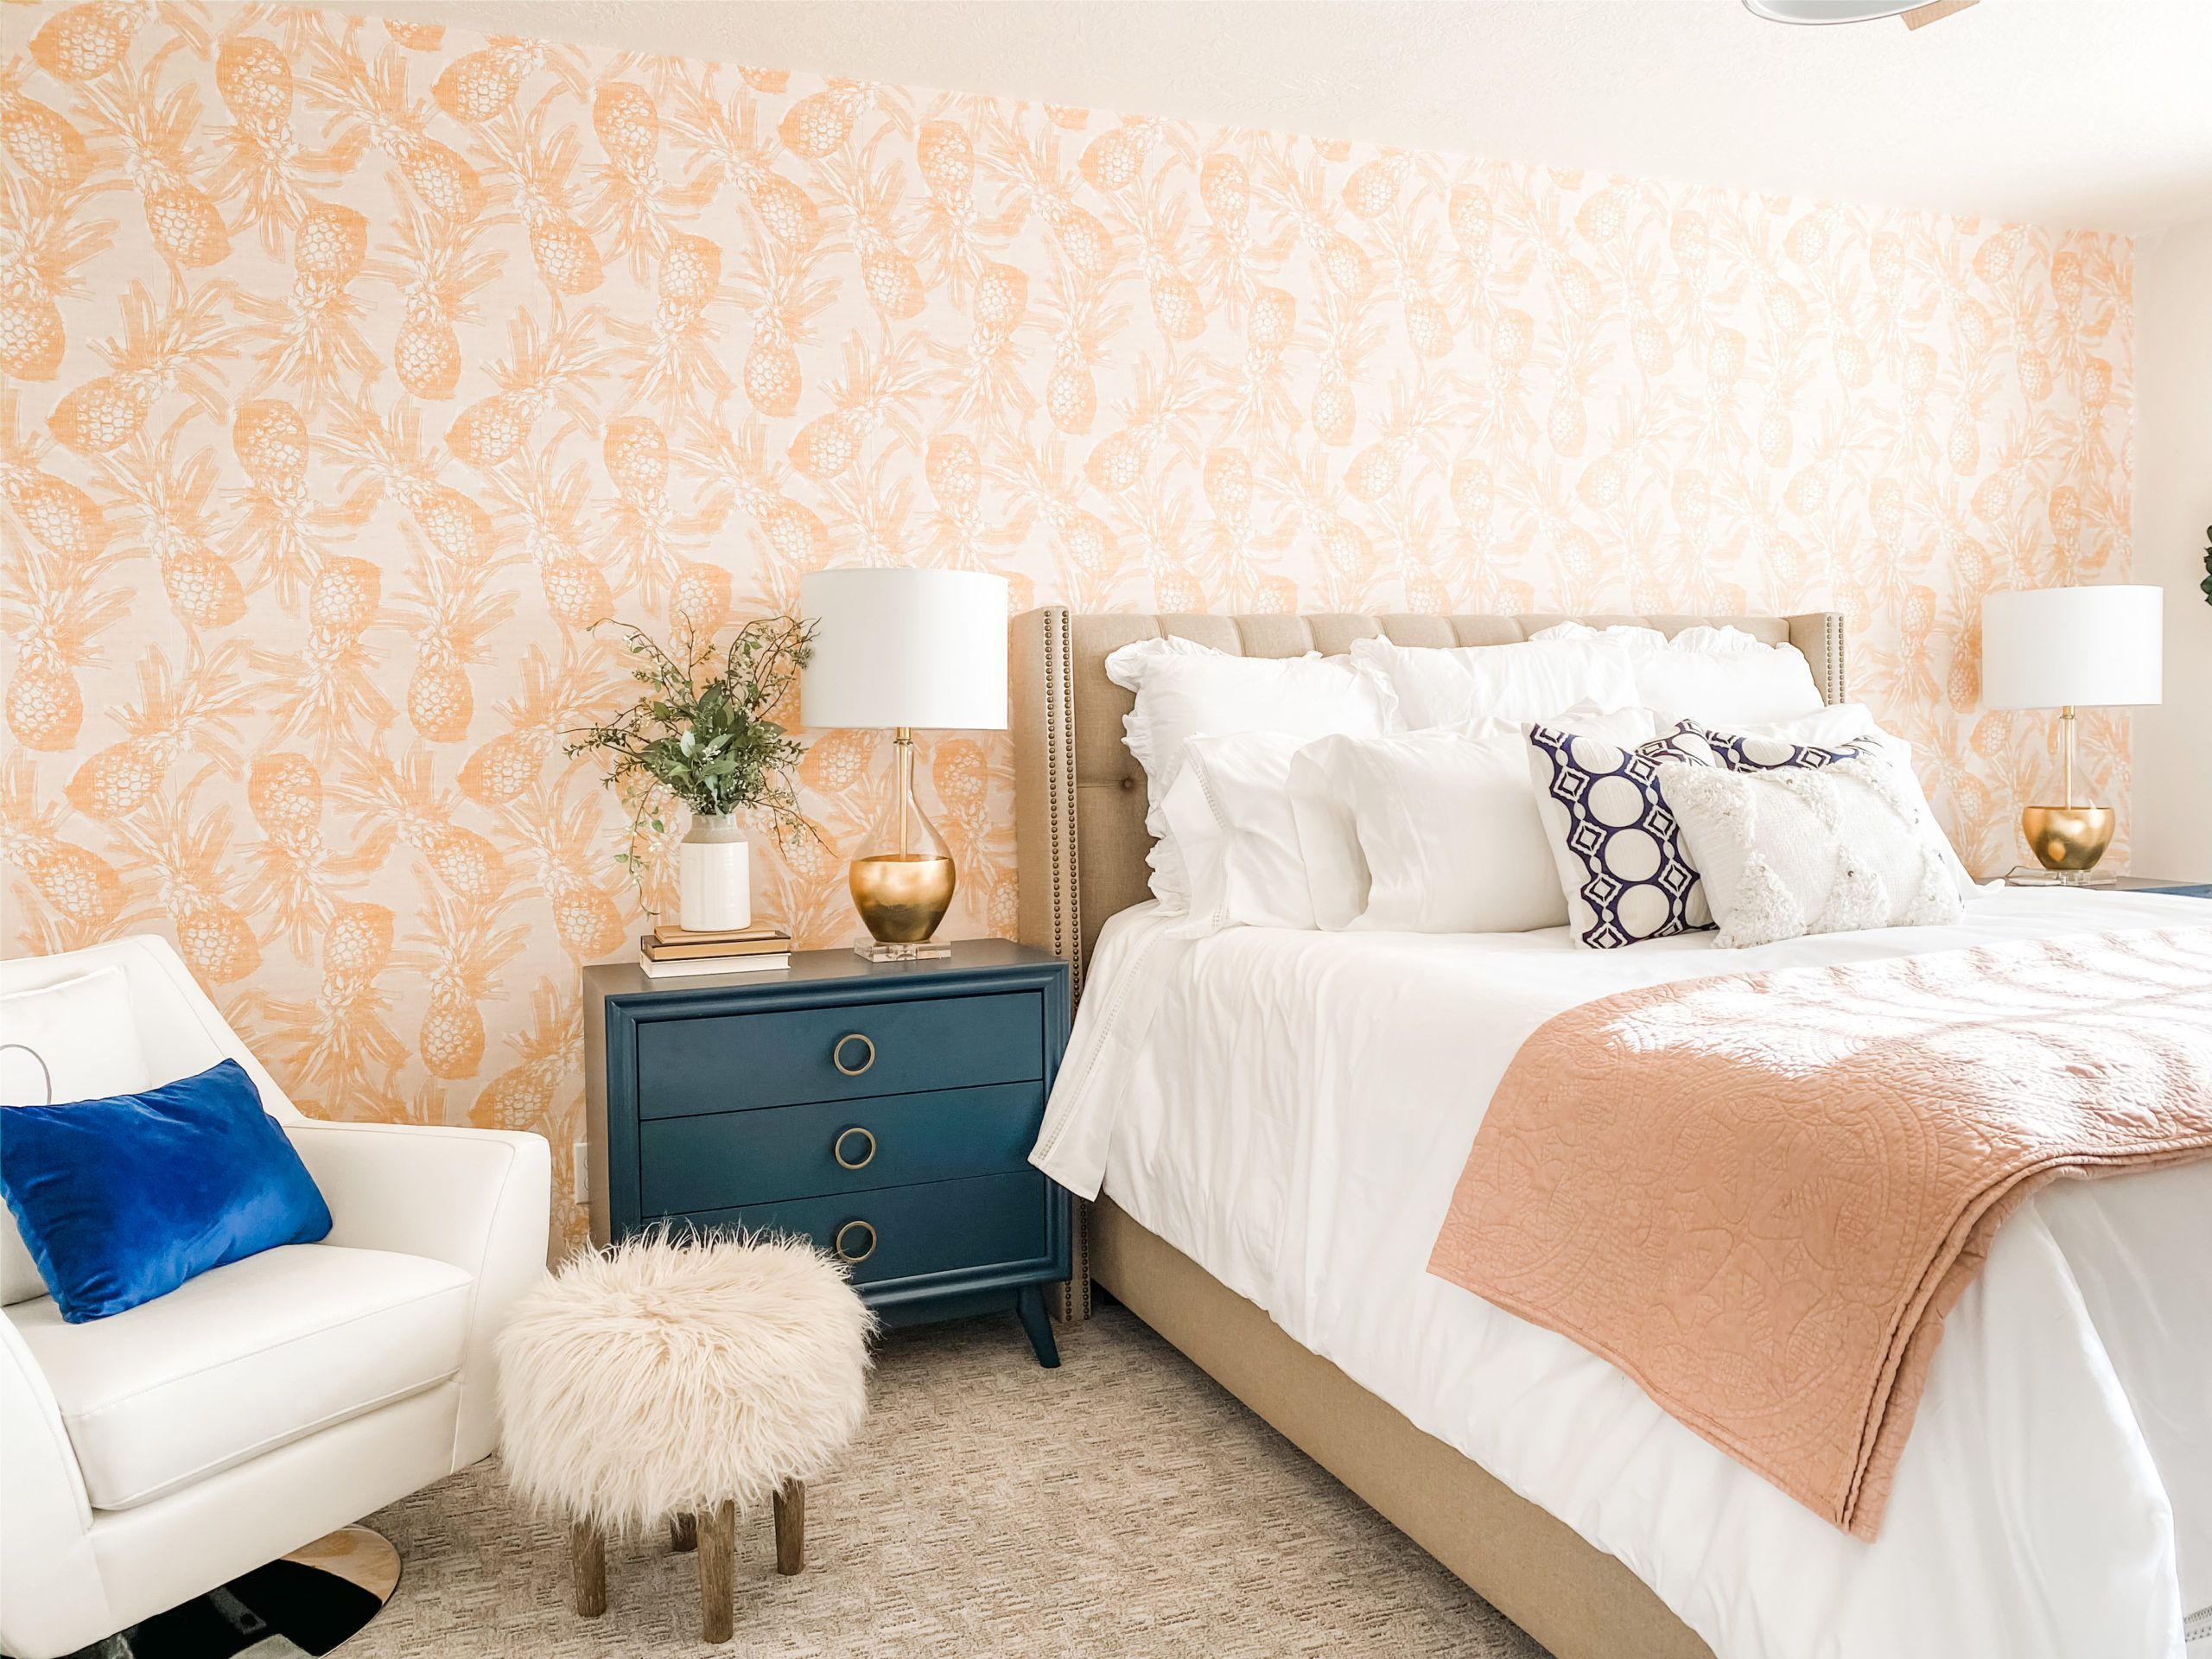 Calypso Wallpaper • Golden Yellow Pineapple Wallpaper • Cheerful Bedroom • @OurFigTreeCottage